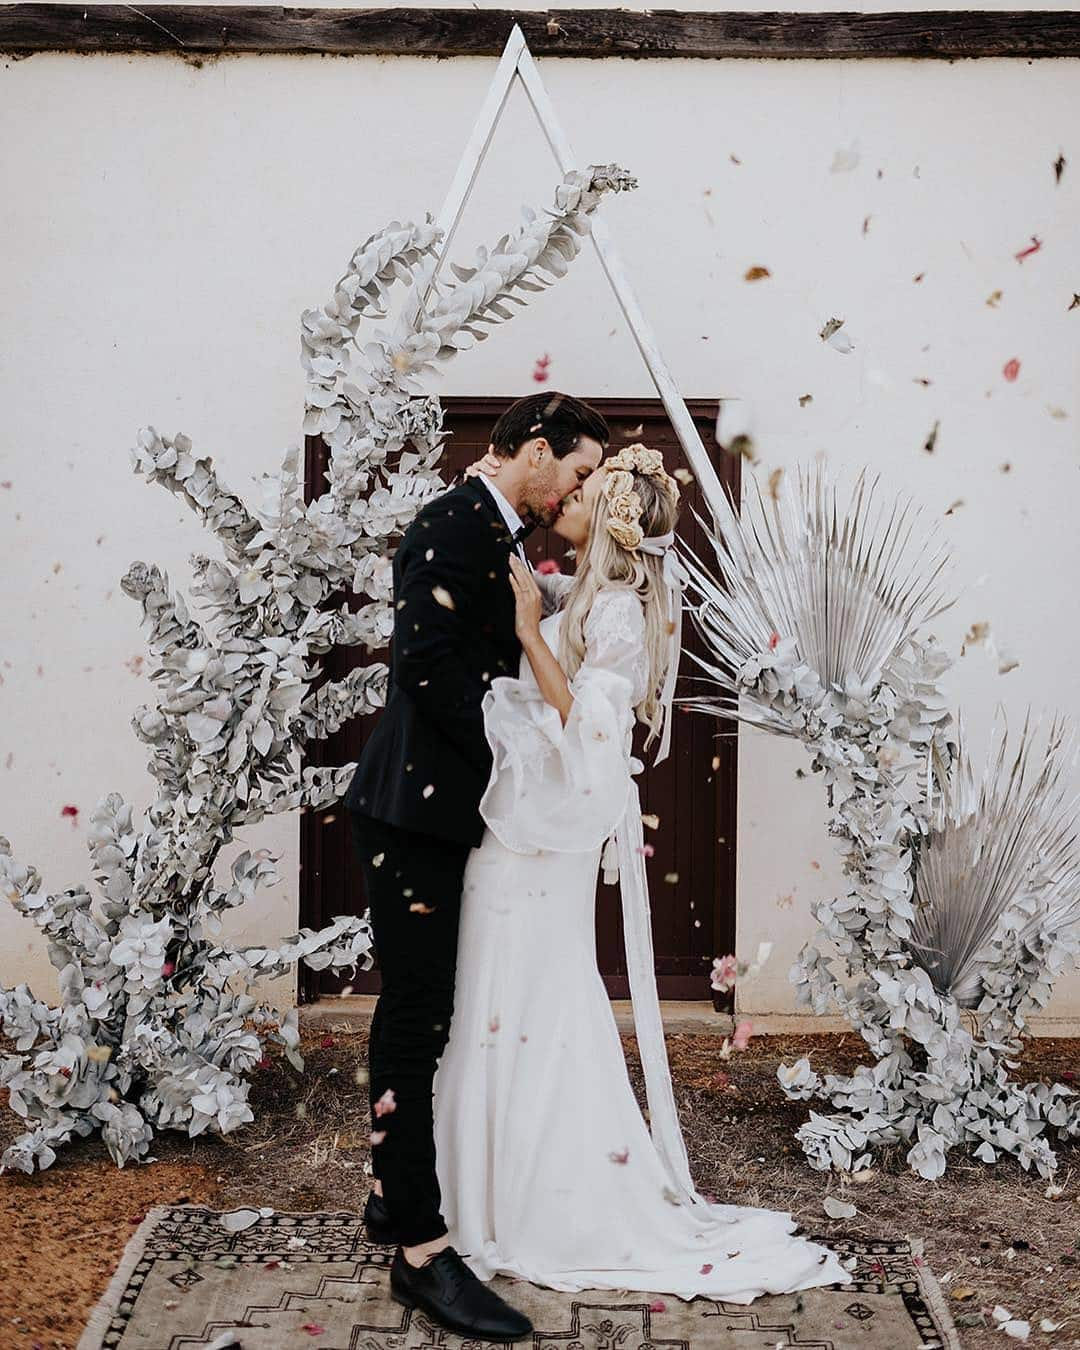 Triangle Wedding Arbour with Couple Kissing